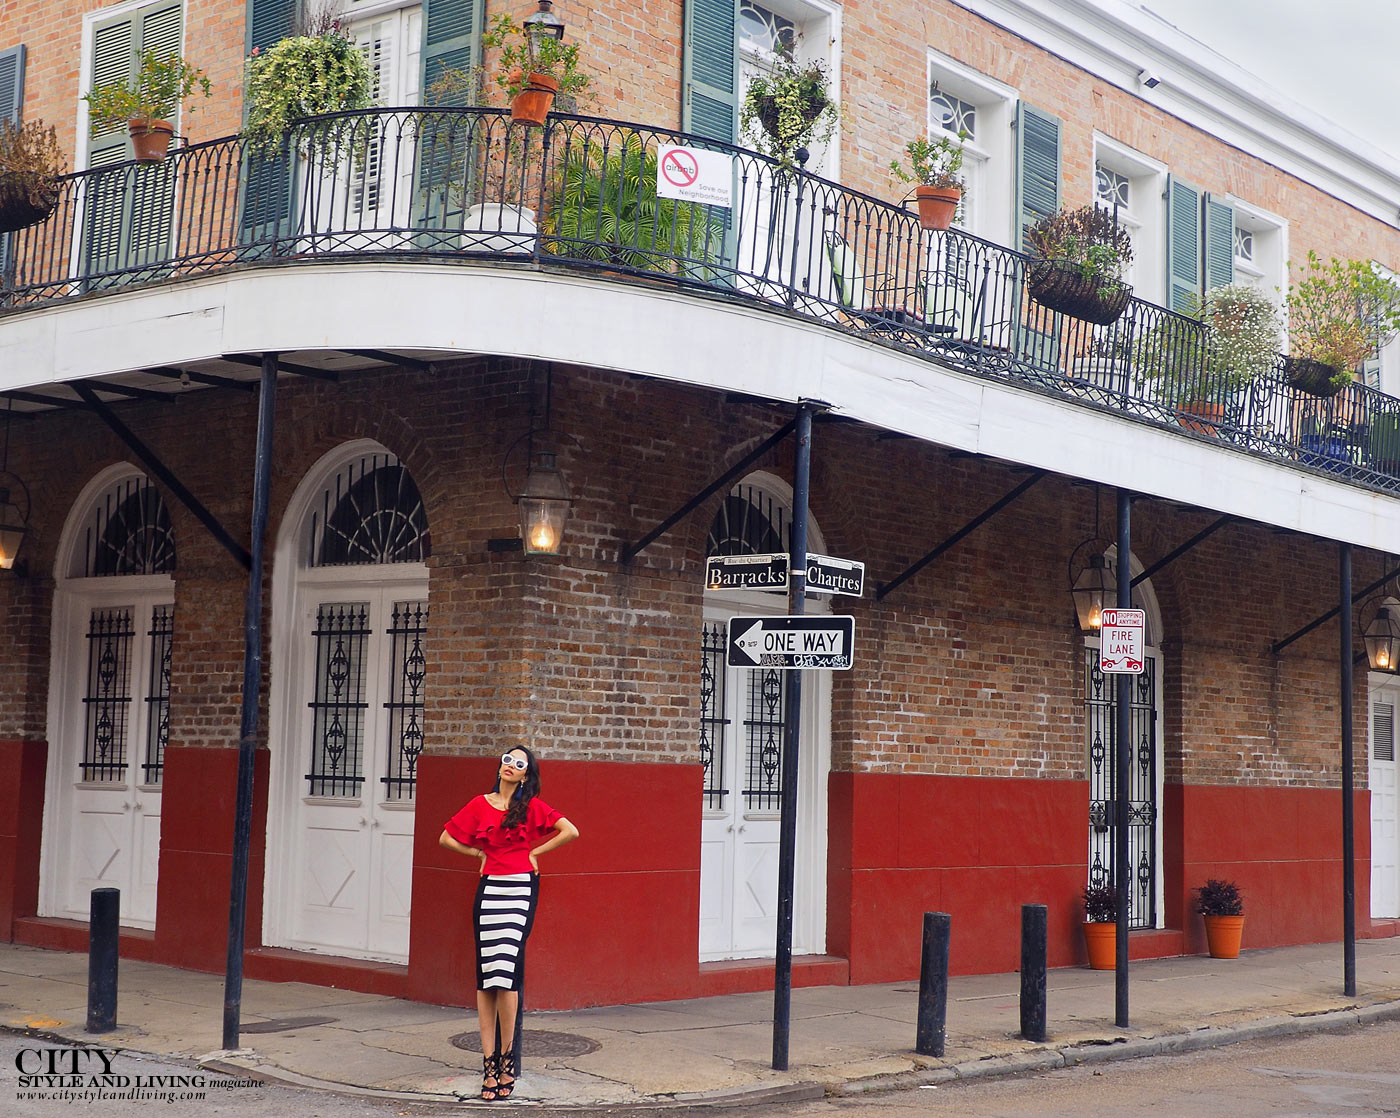 City style and living magazine The Editors Notebook style fashion blogger Shivana Maharaj french quarter new orleans ruffle top and striped skirt street corner architecture